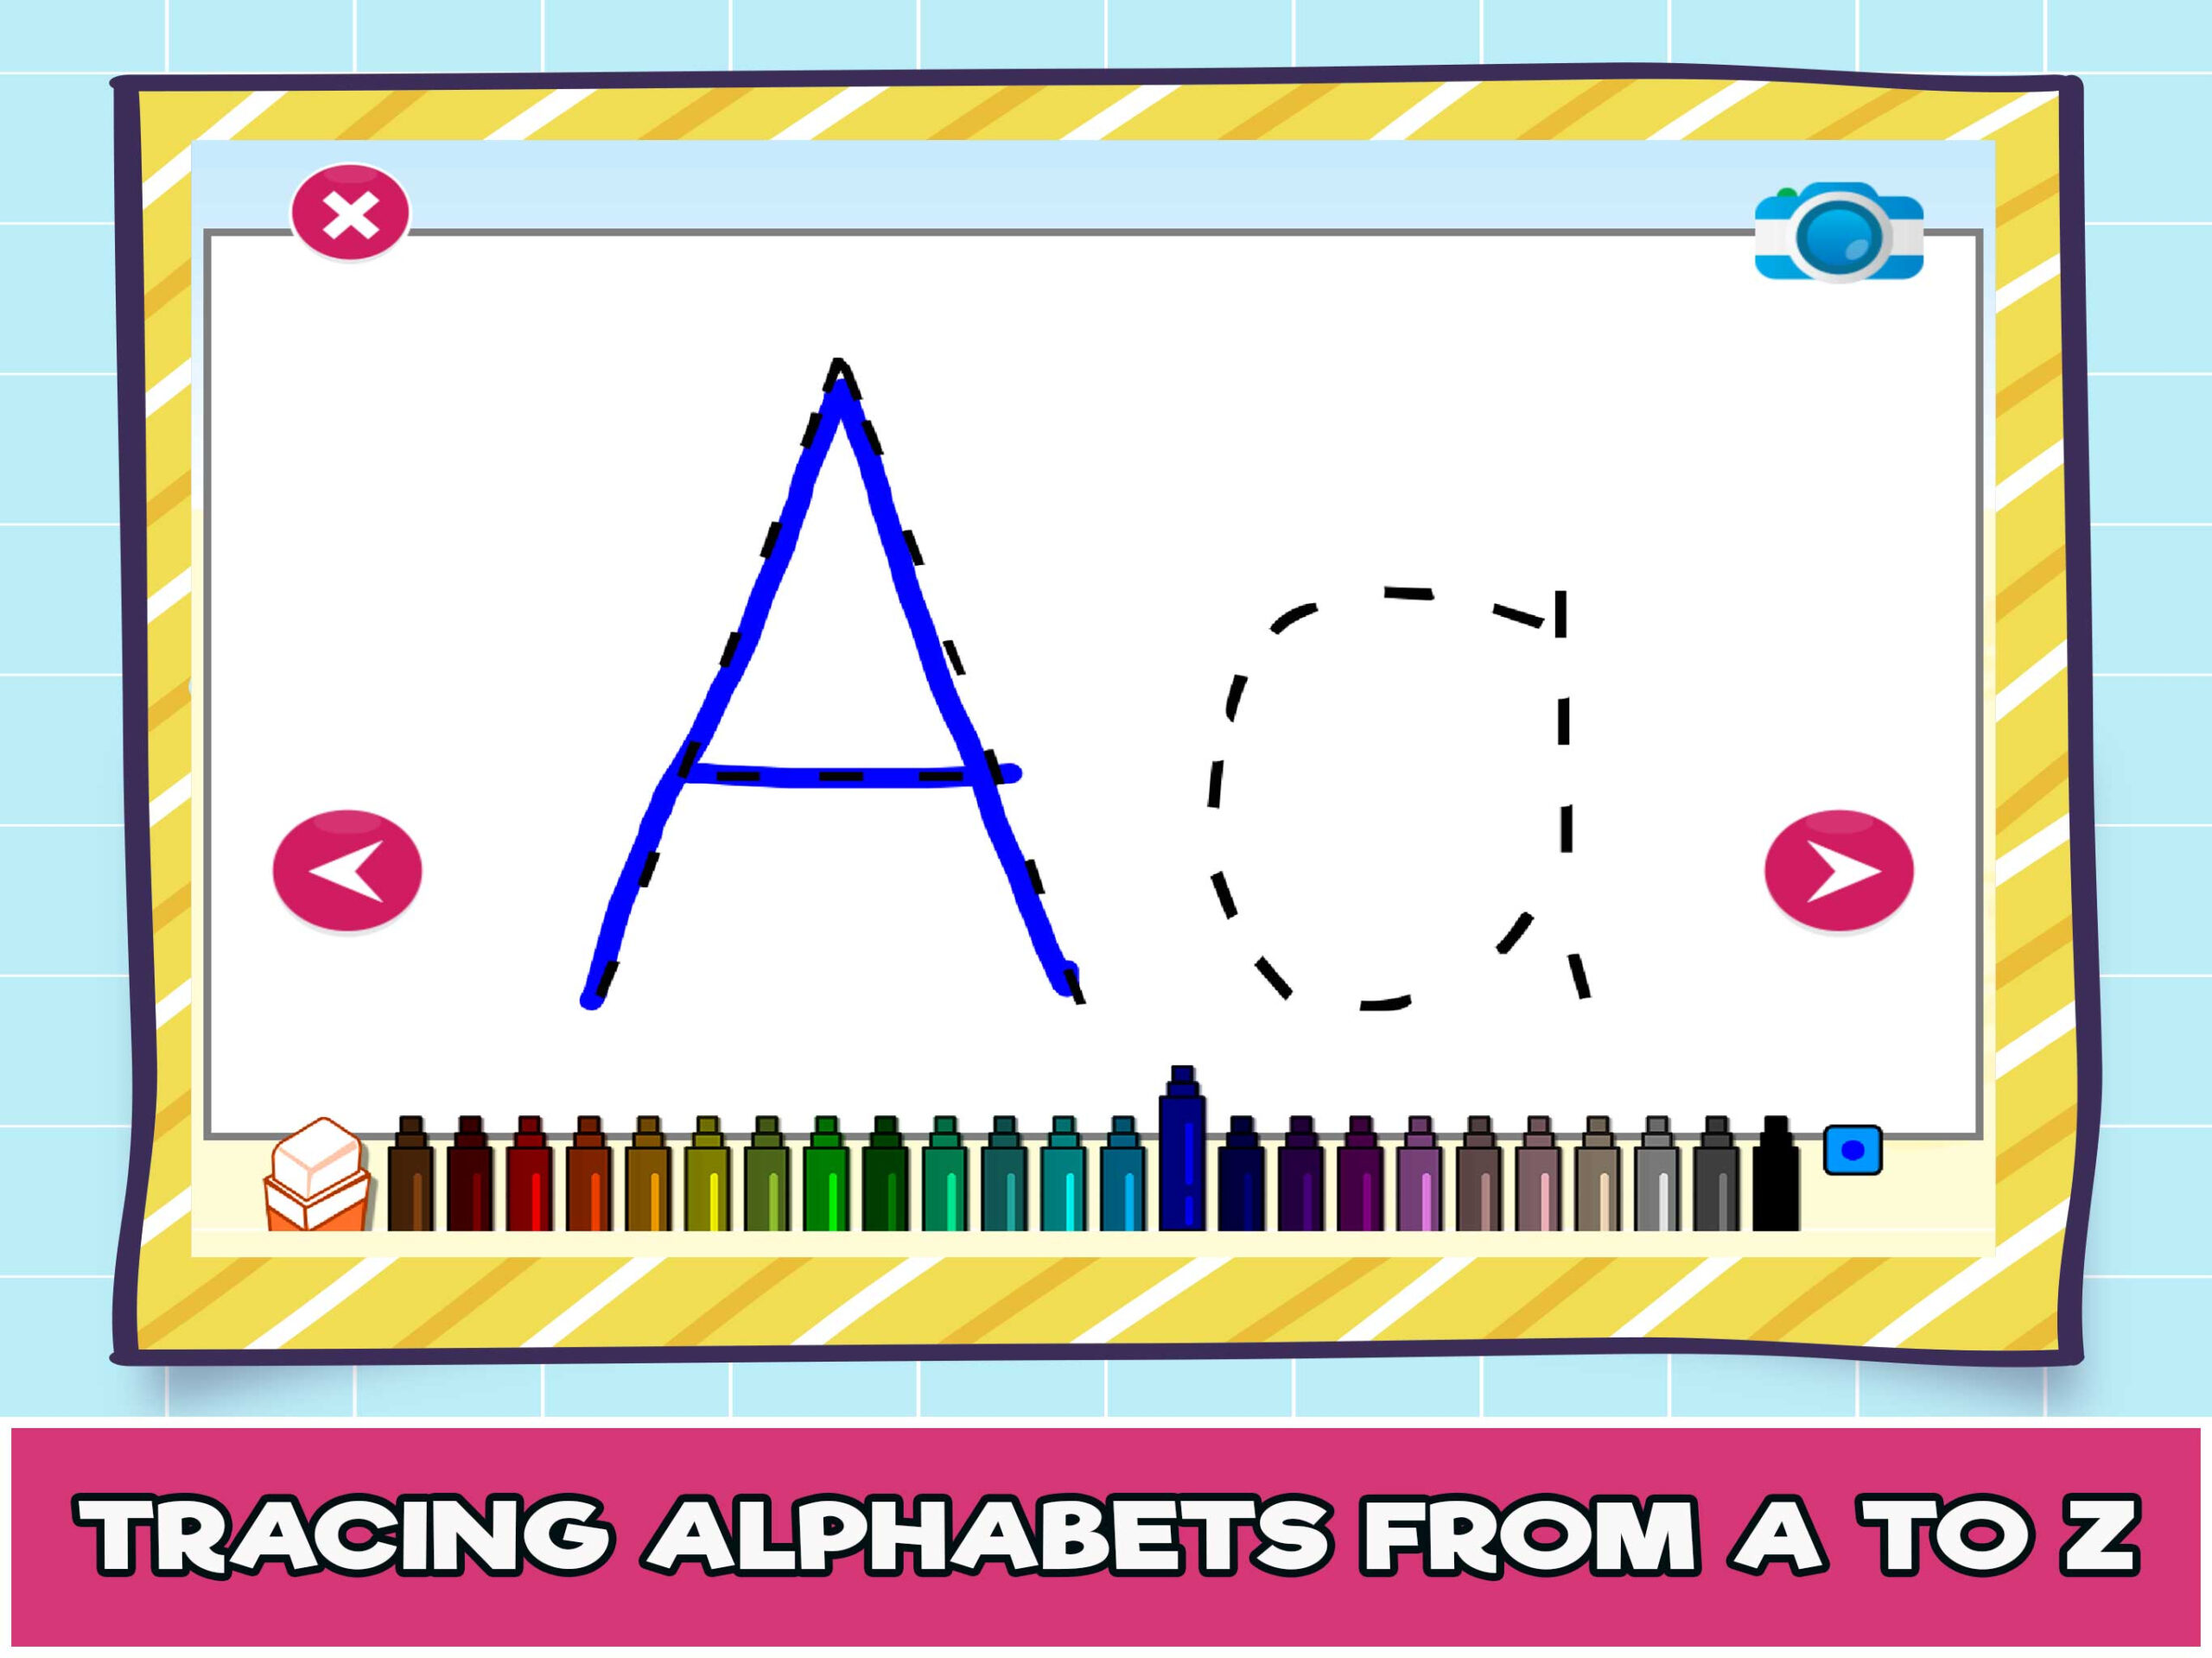 Free Online Alphabet Tracing Game For Kids - The Learning Apps with regard to Alphabet Tracing Apps For Ipad